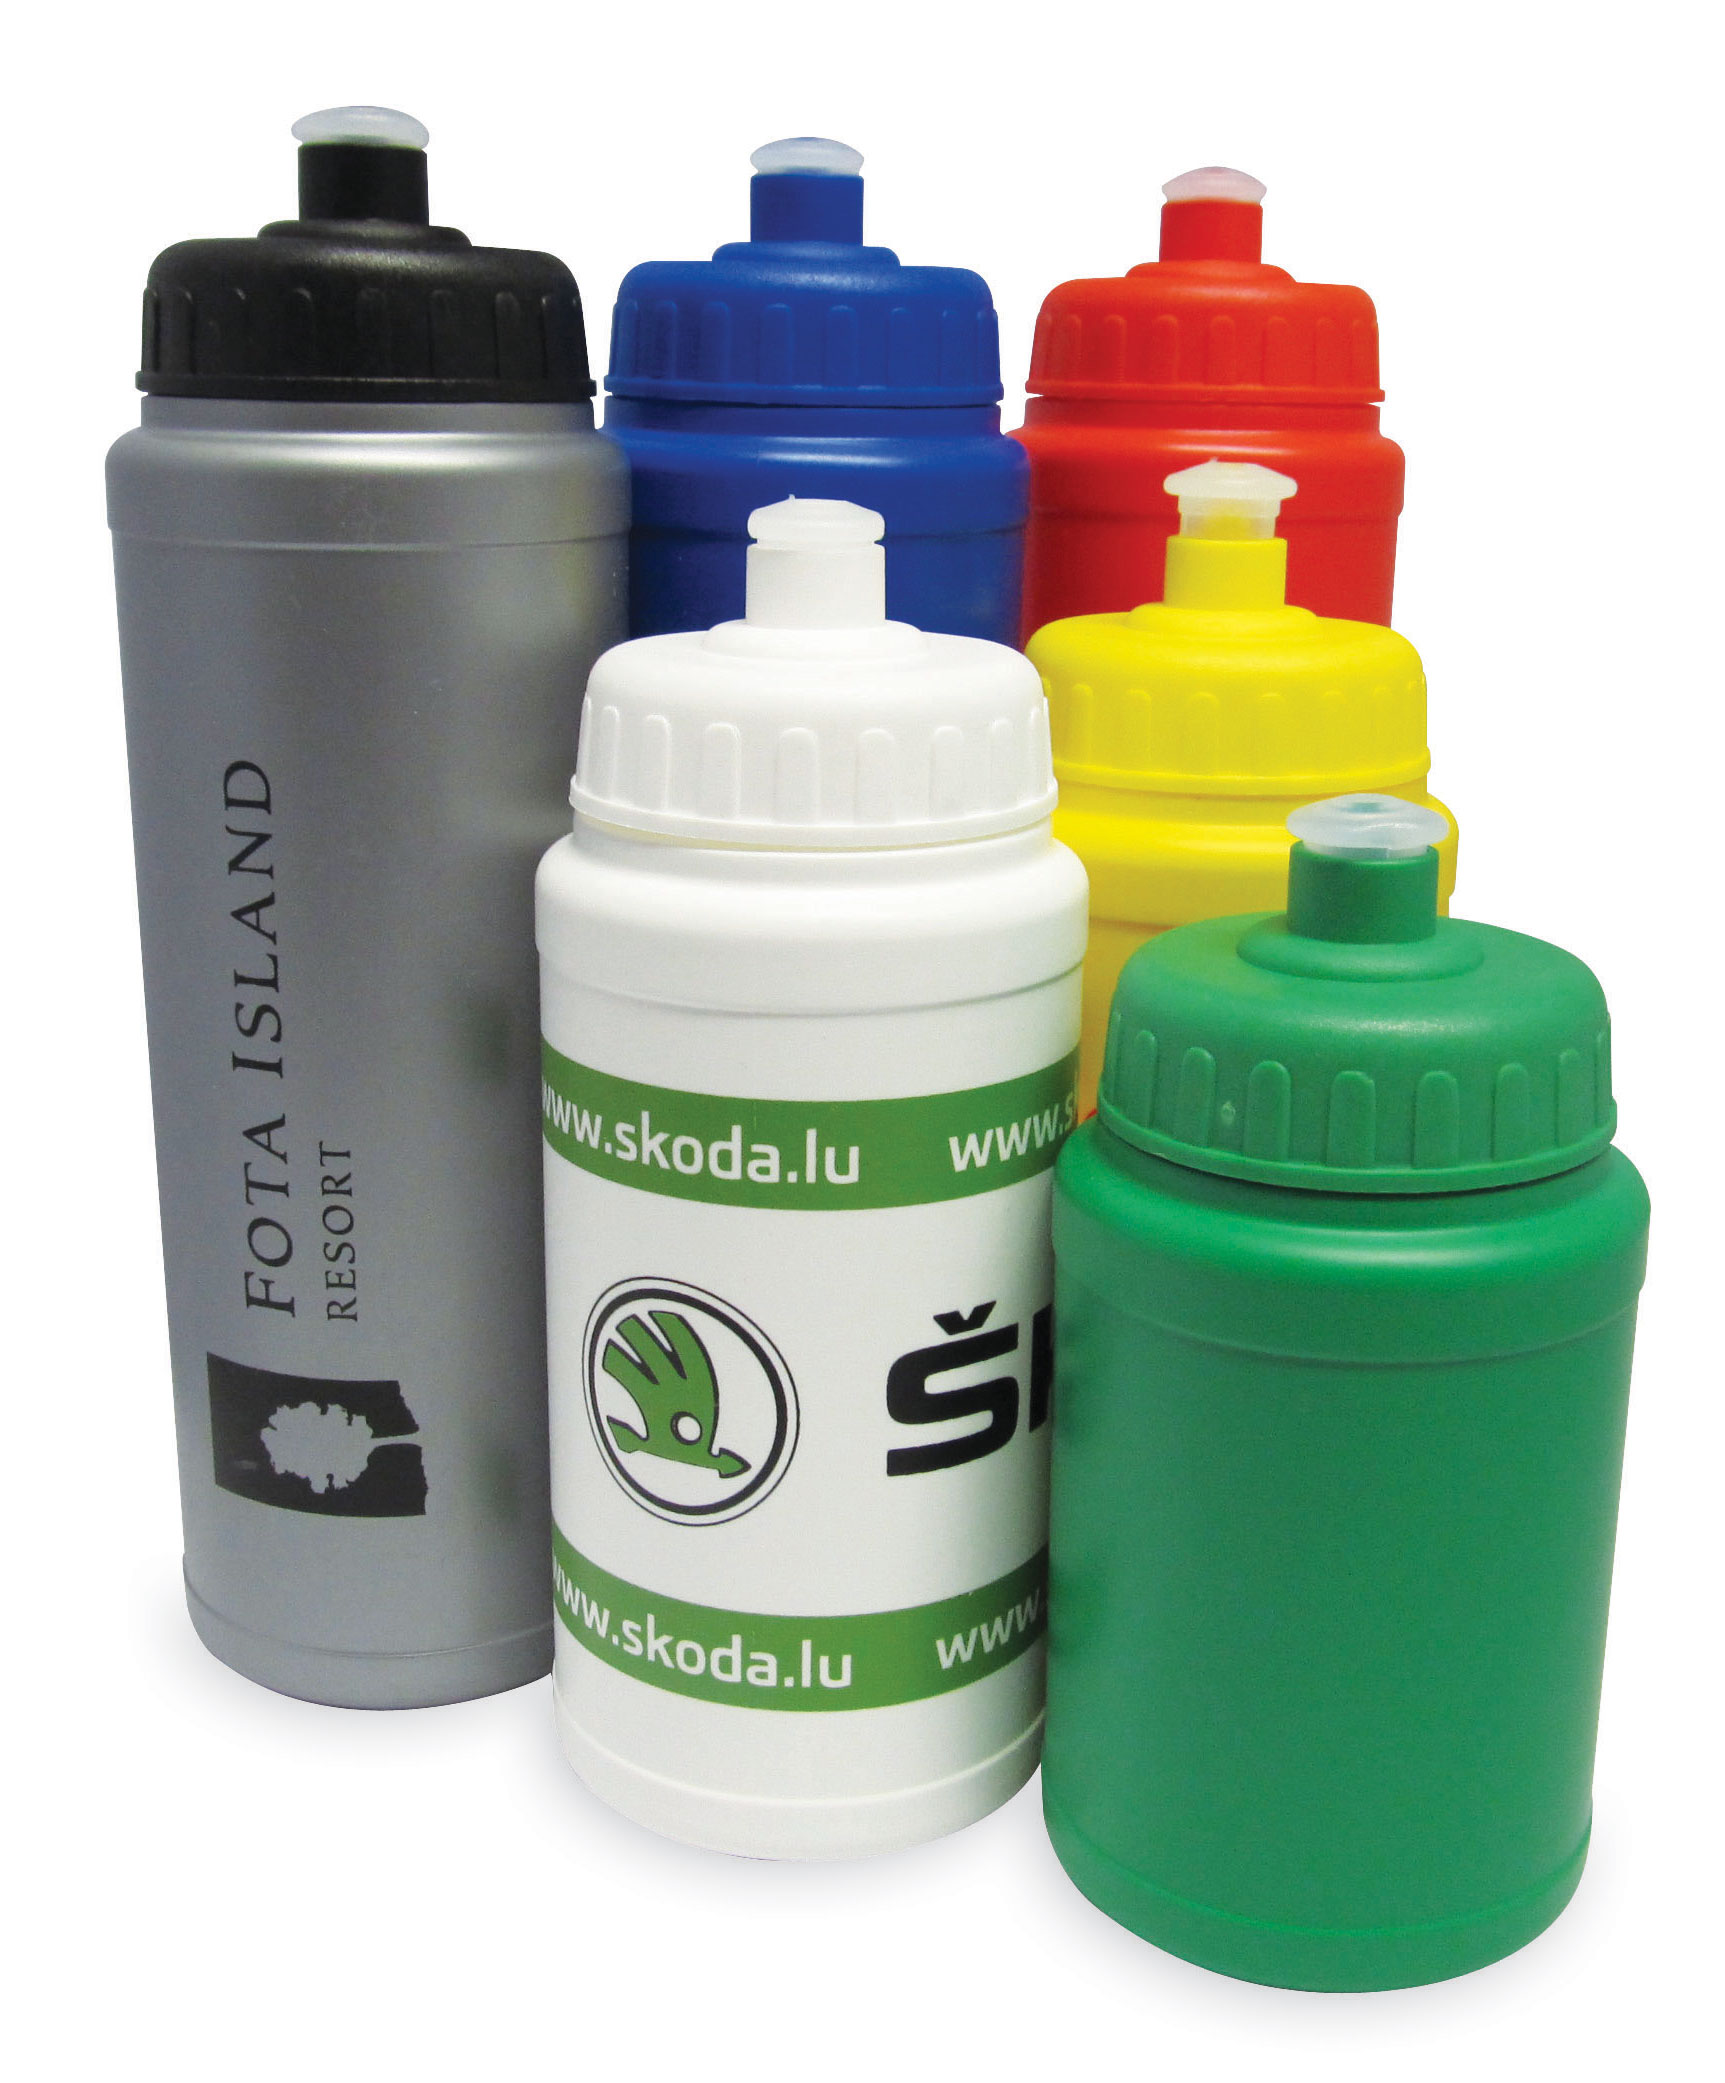 Promotional 300ml Baseline Bottle